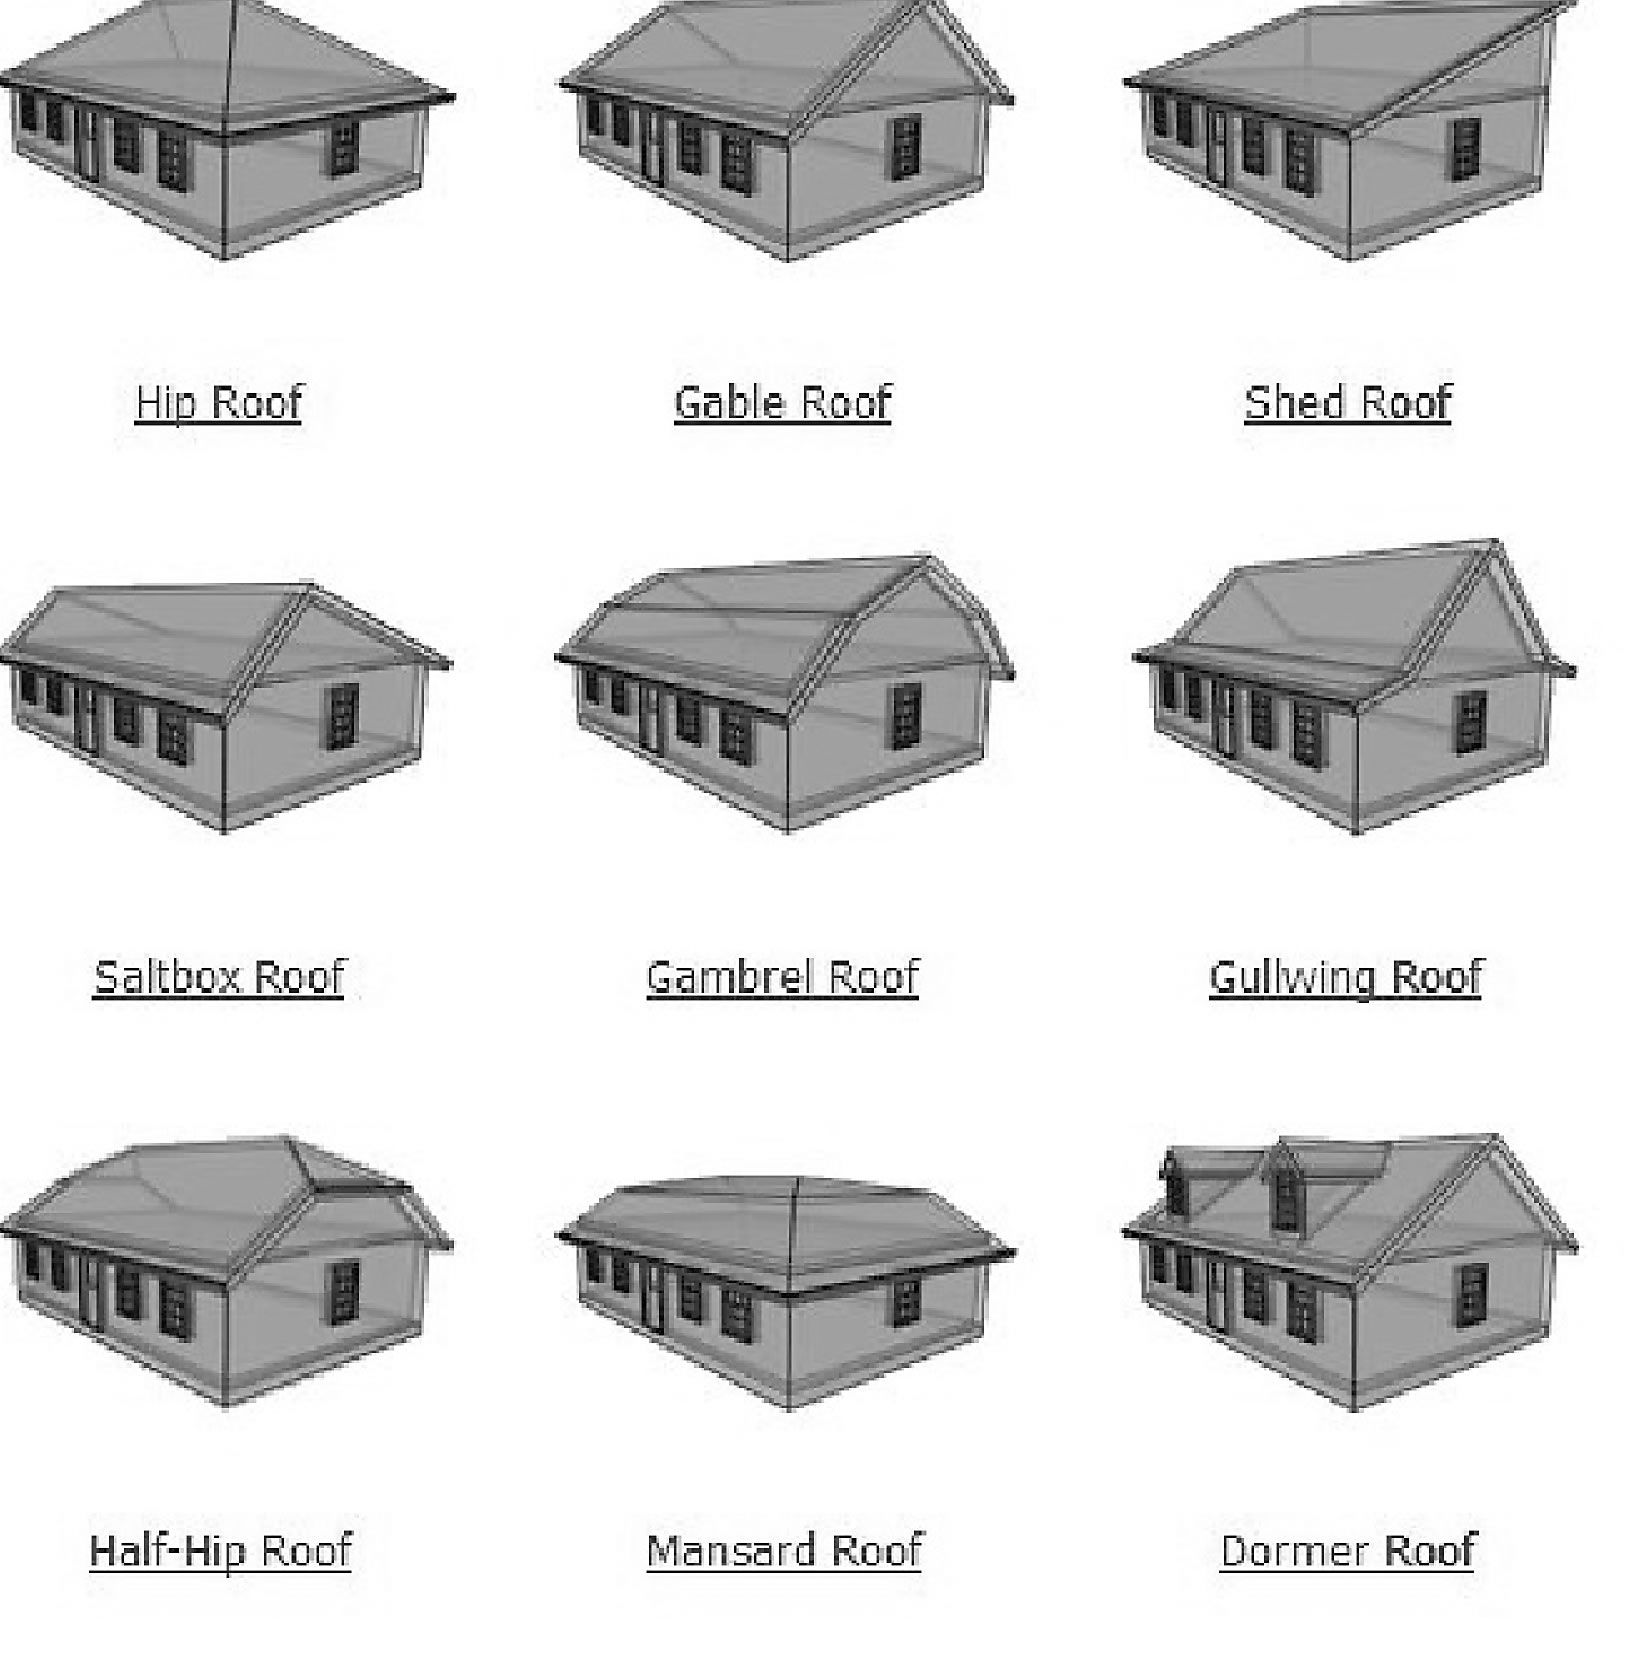 French roof styles roofs and shed dormer roofs they for Different types of house plans